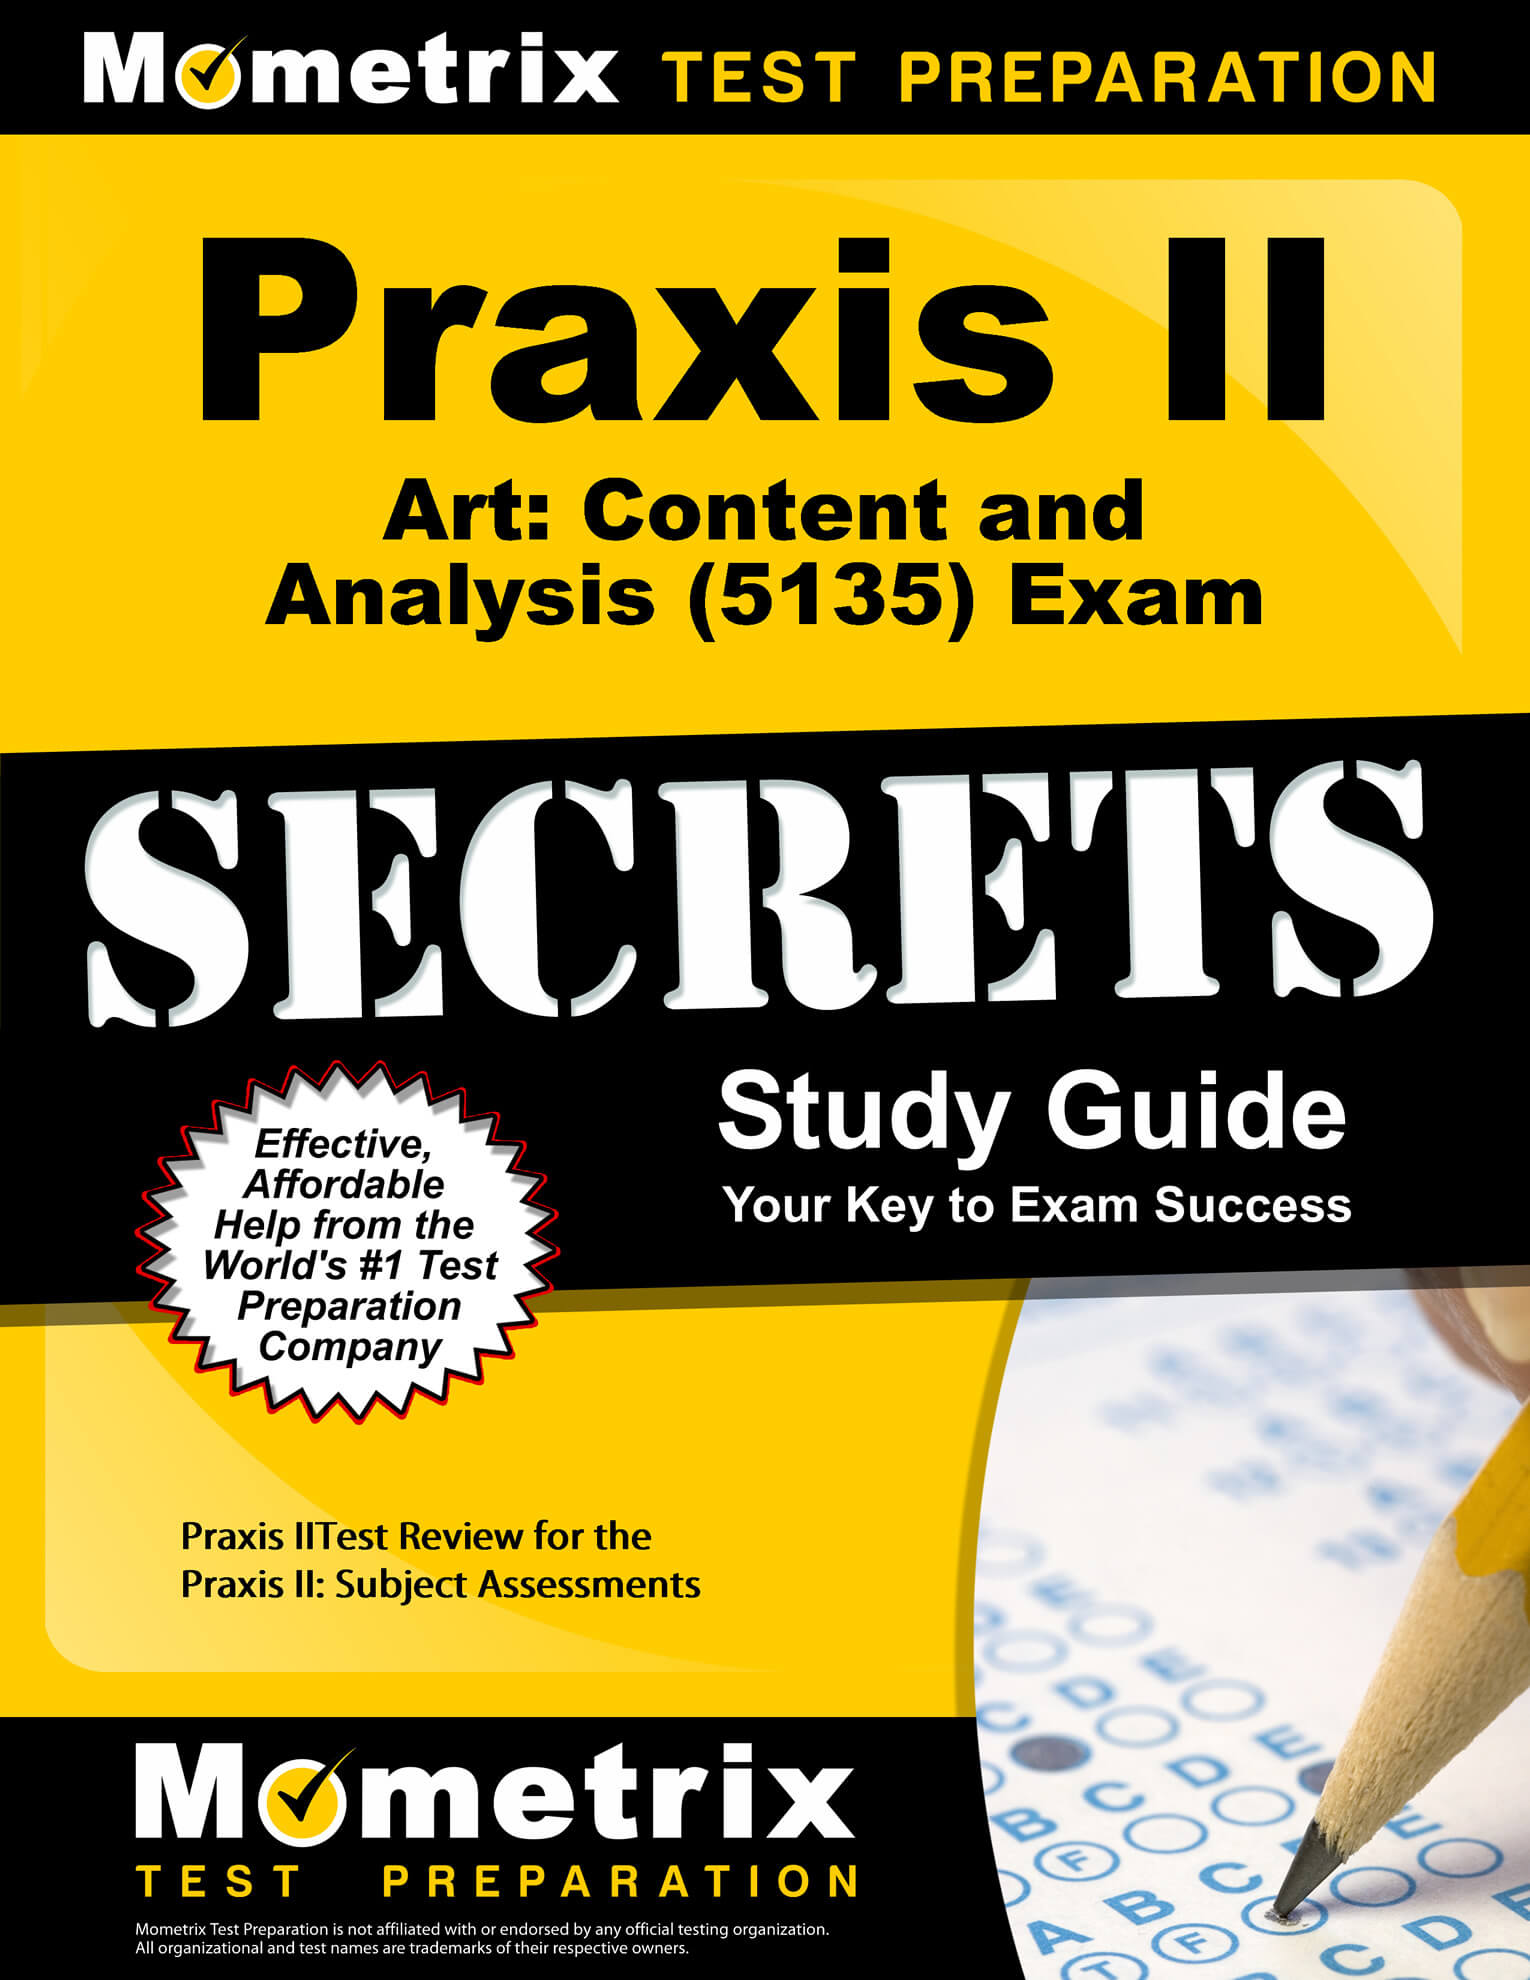 Praxis II Art: Content and Analysis Study Guide